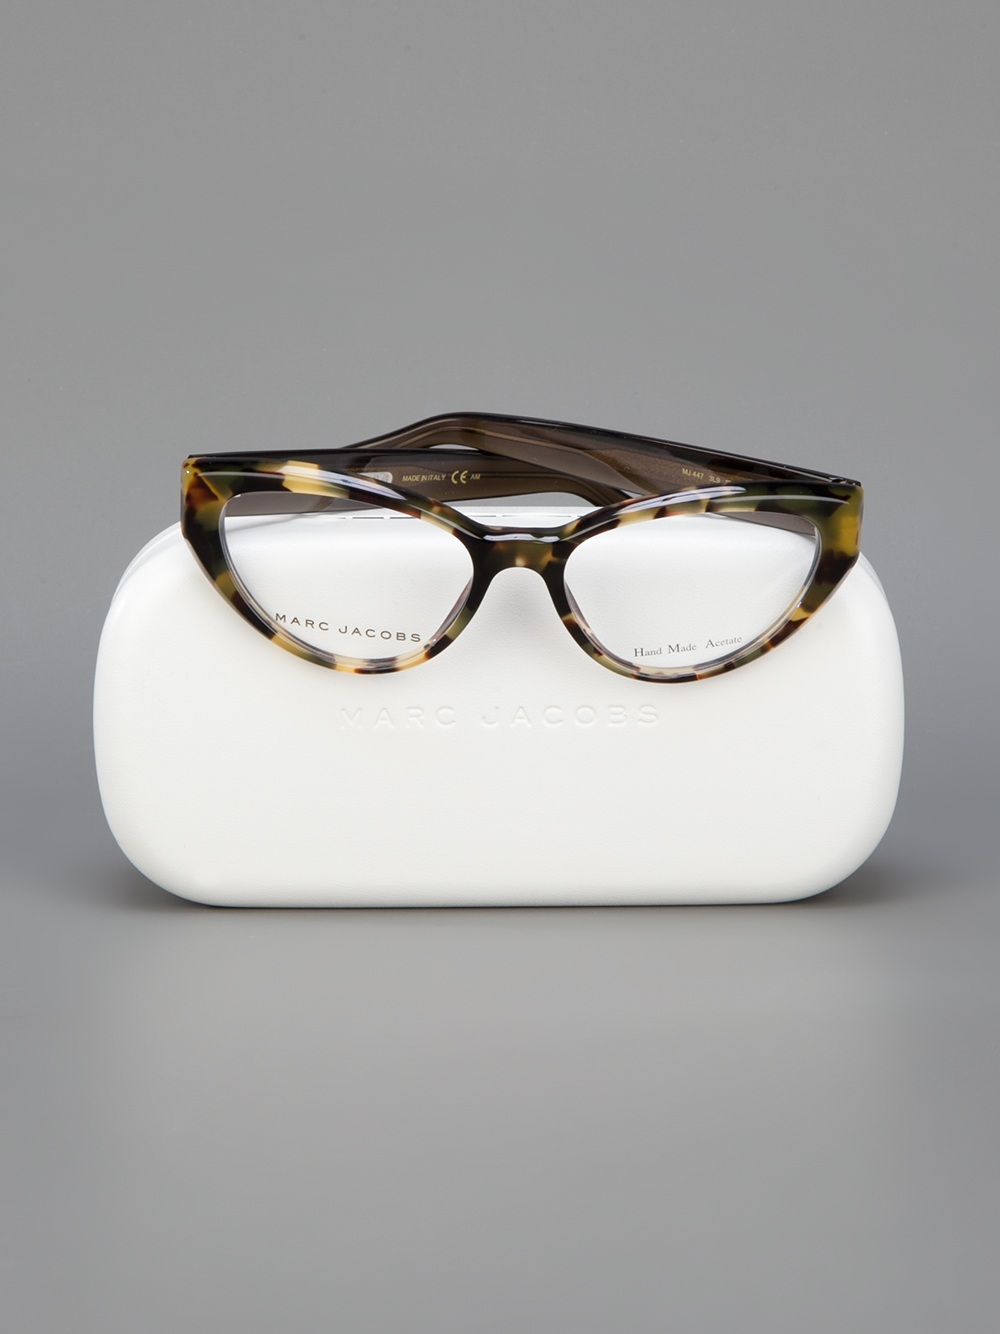 b3f67f115f5 Marc Jacobs Rounded Cat Eye Sunglasses